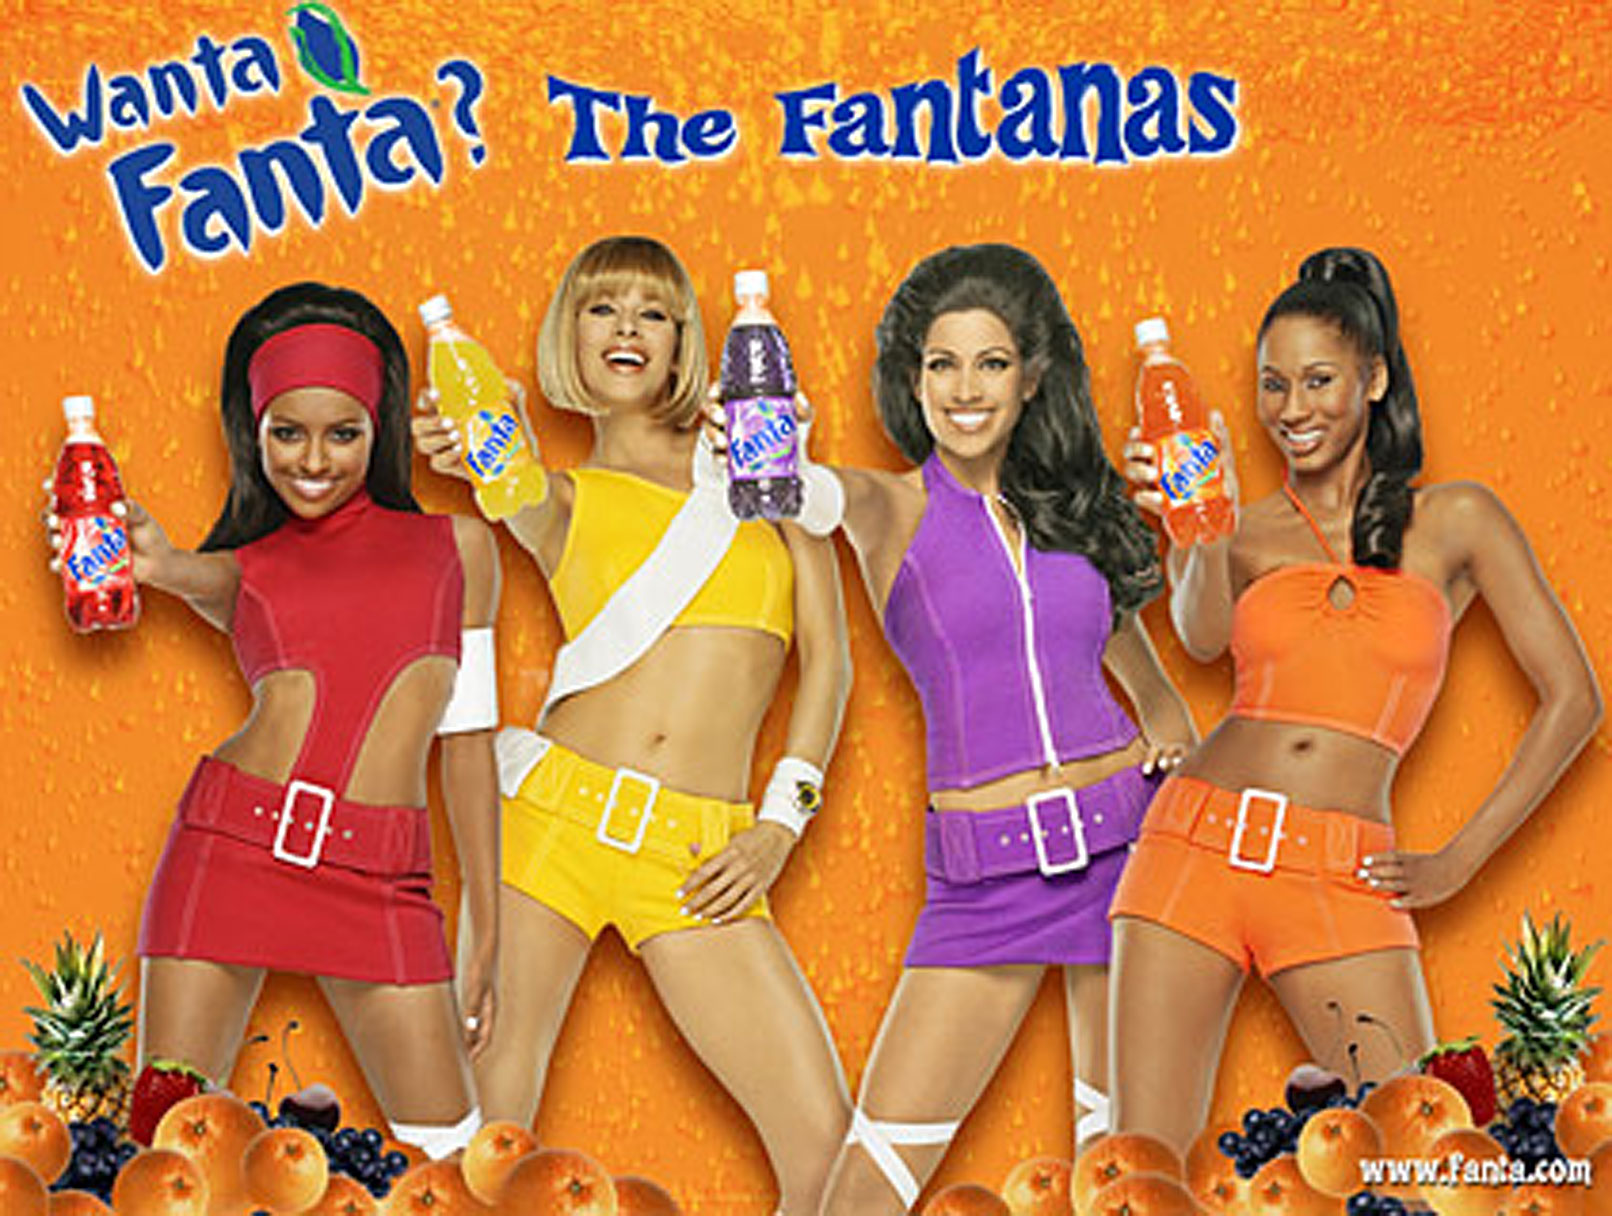 VIDEO: The Return of the Fantanas